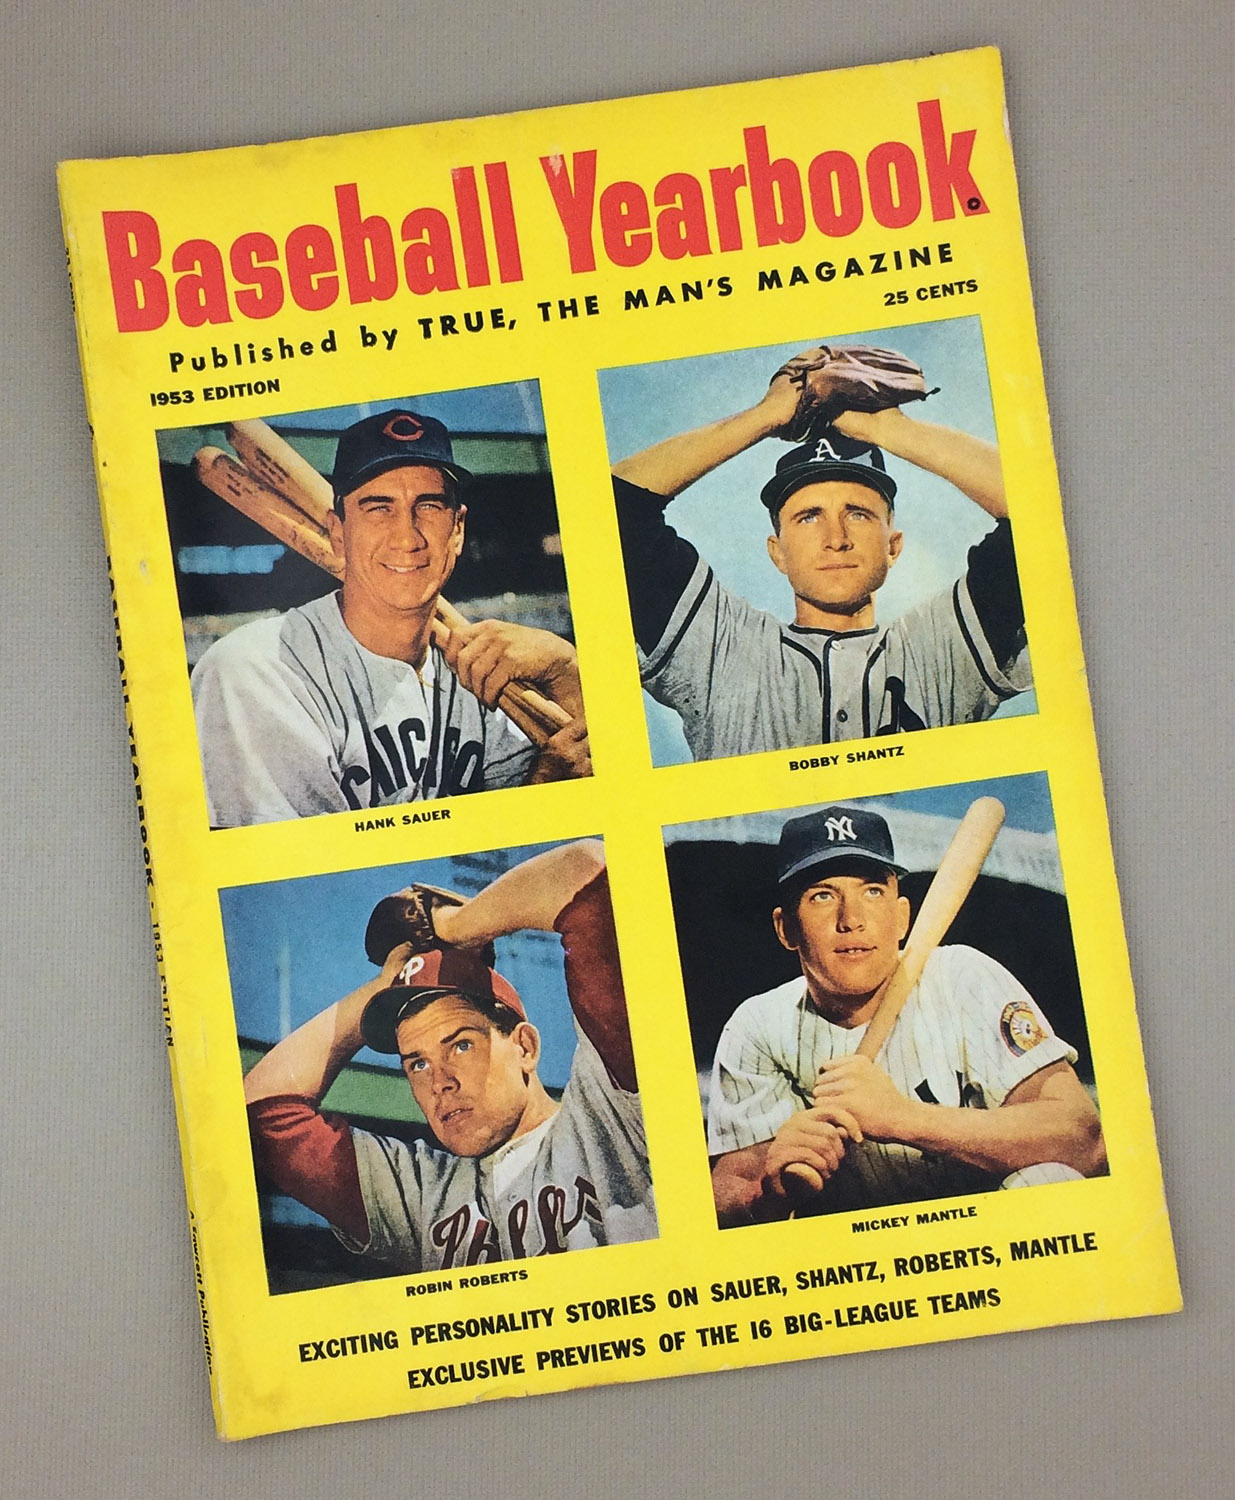 1953BASEBALL YEARBOOK Magazine